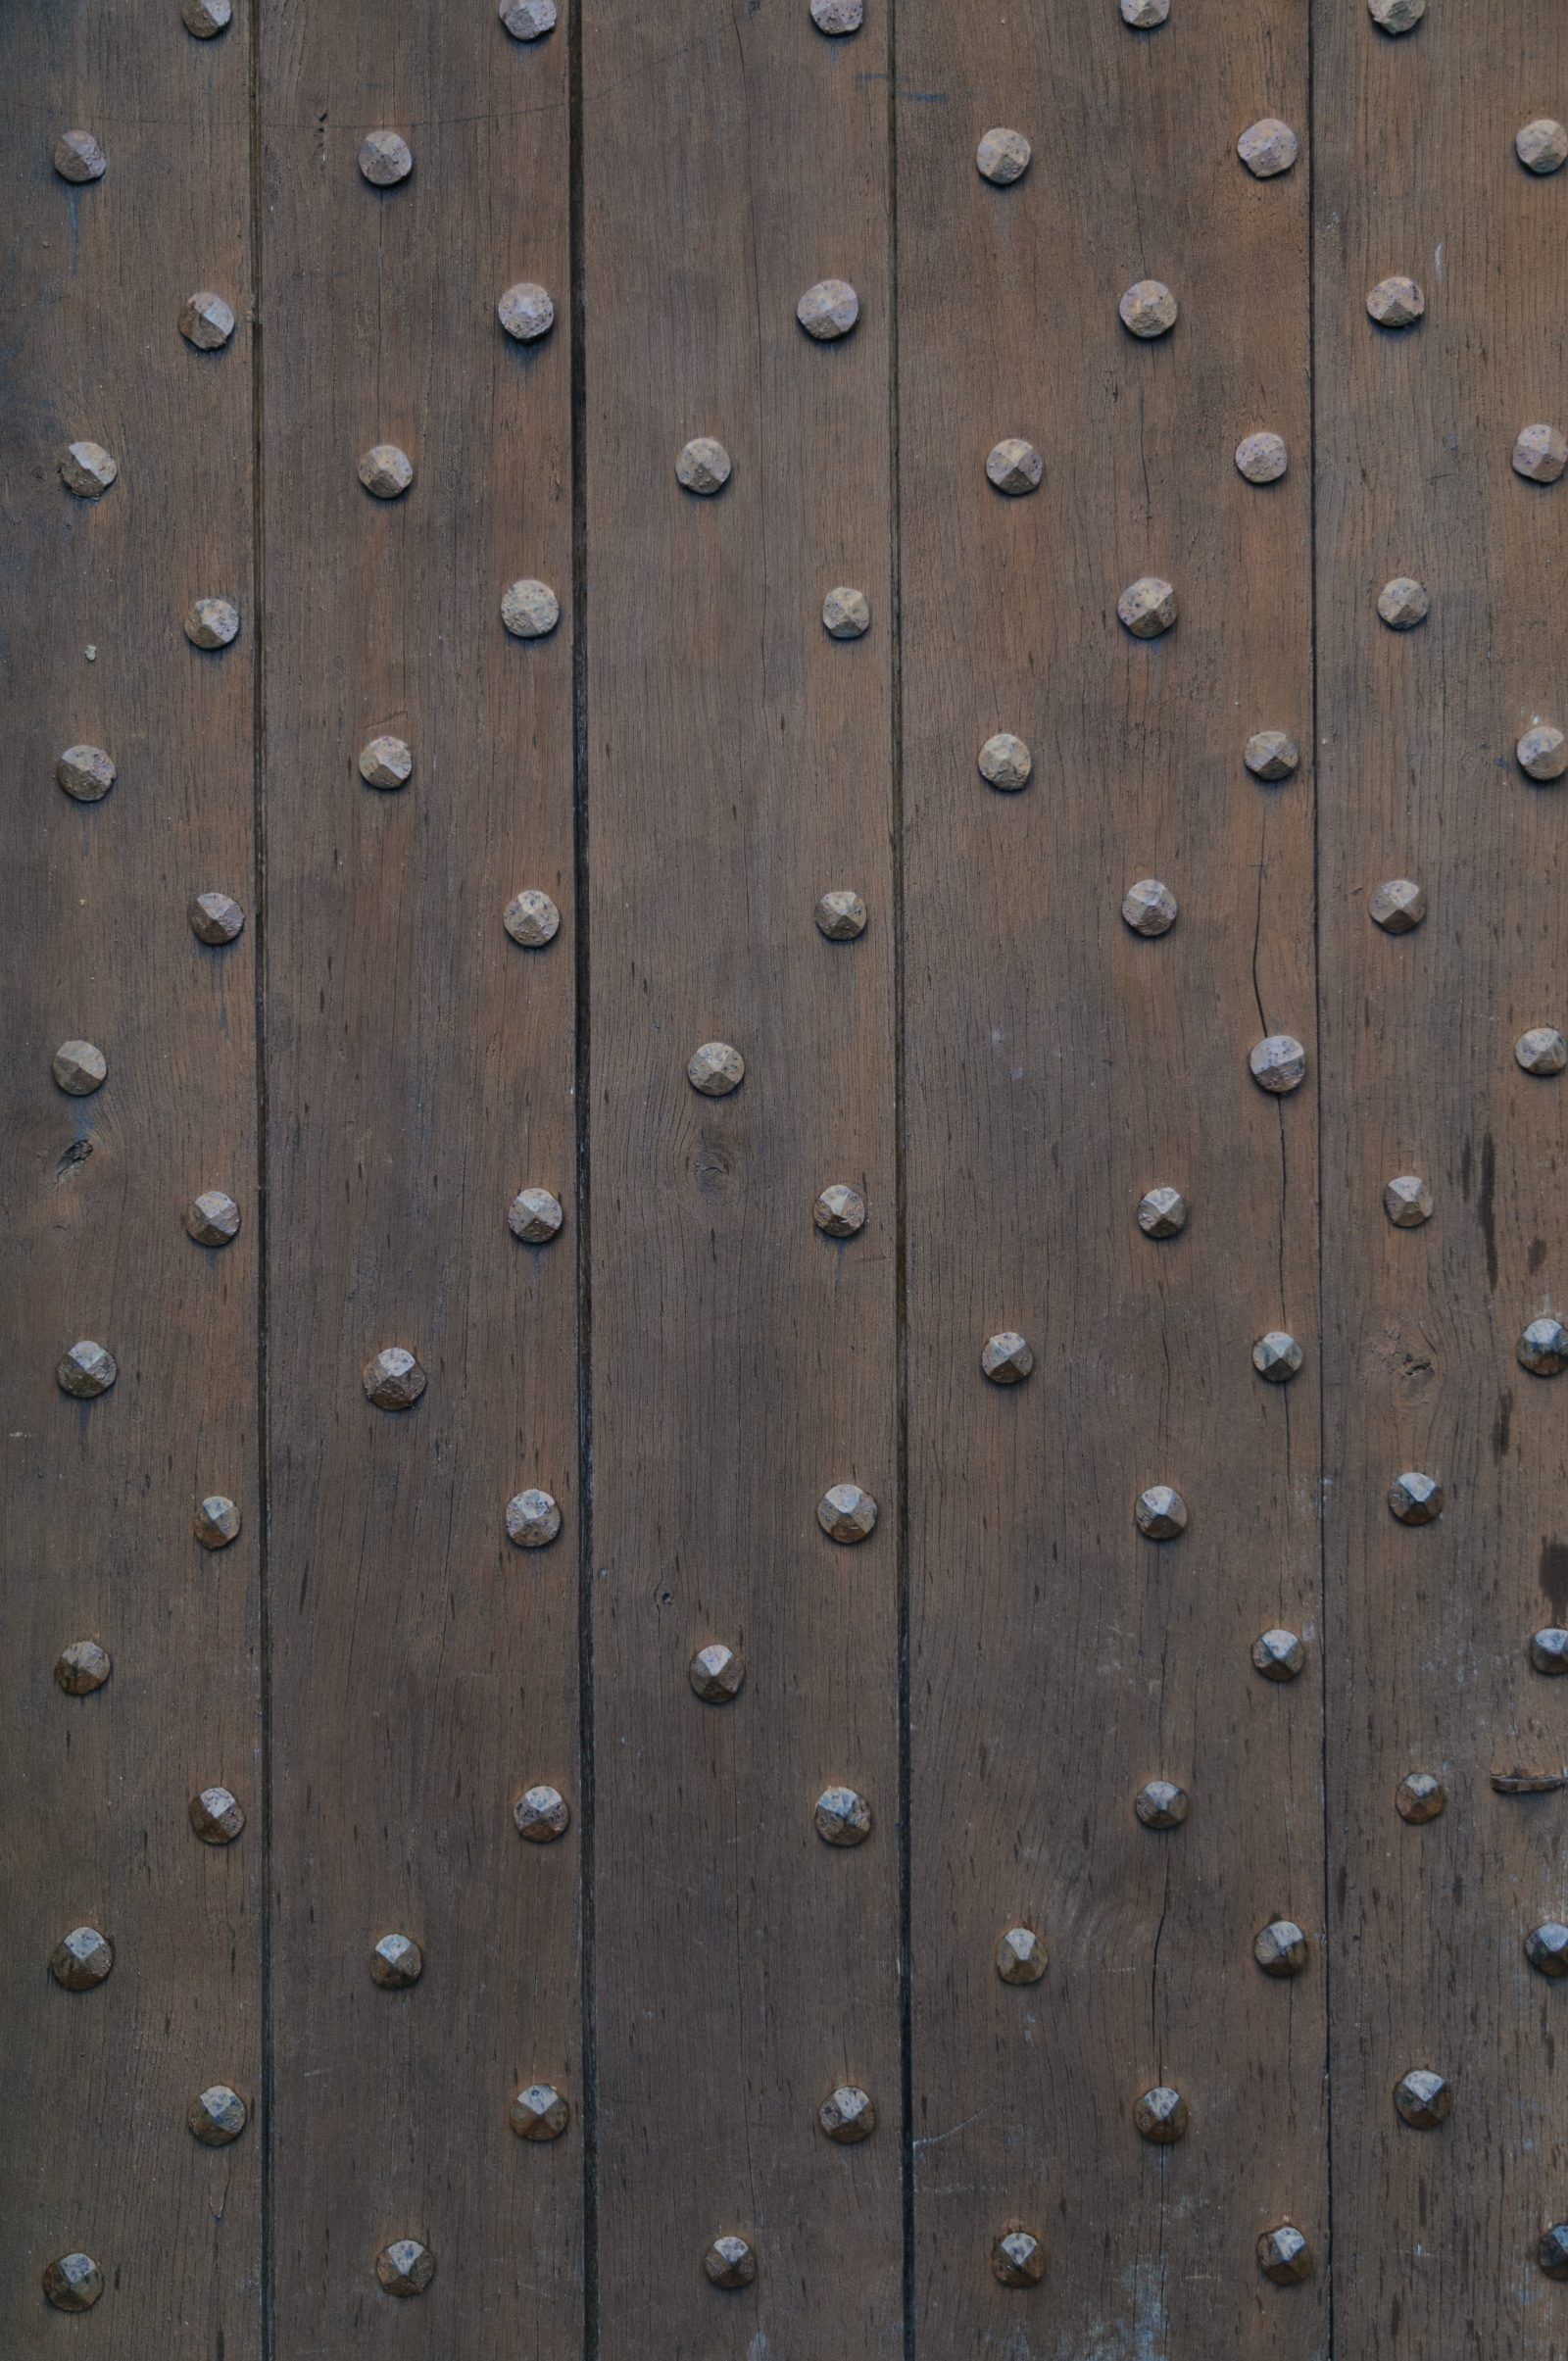 castle wood door iron nails